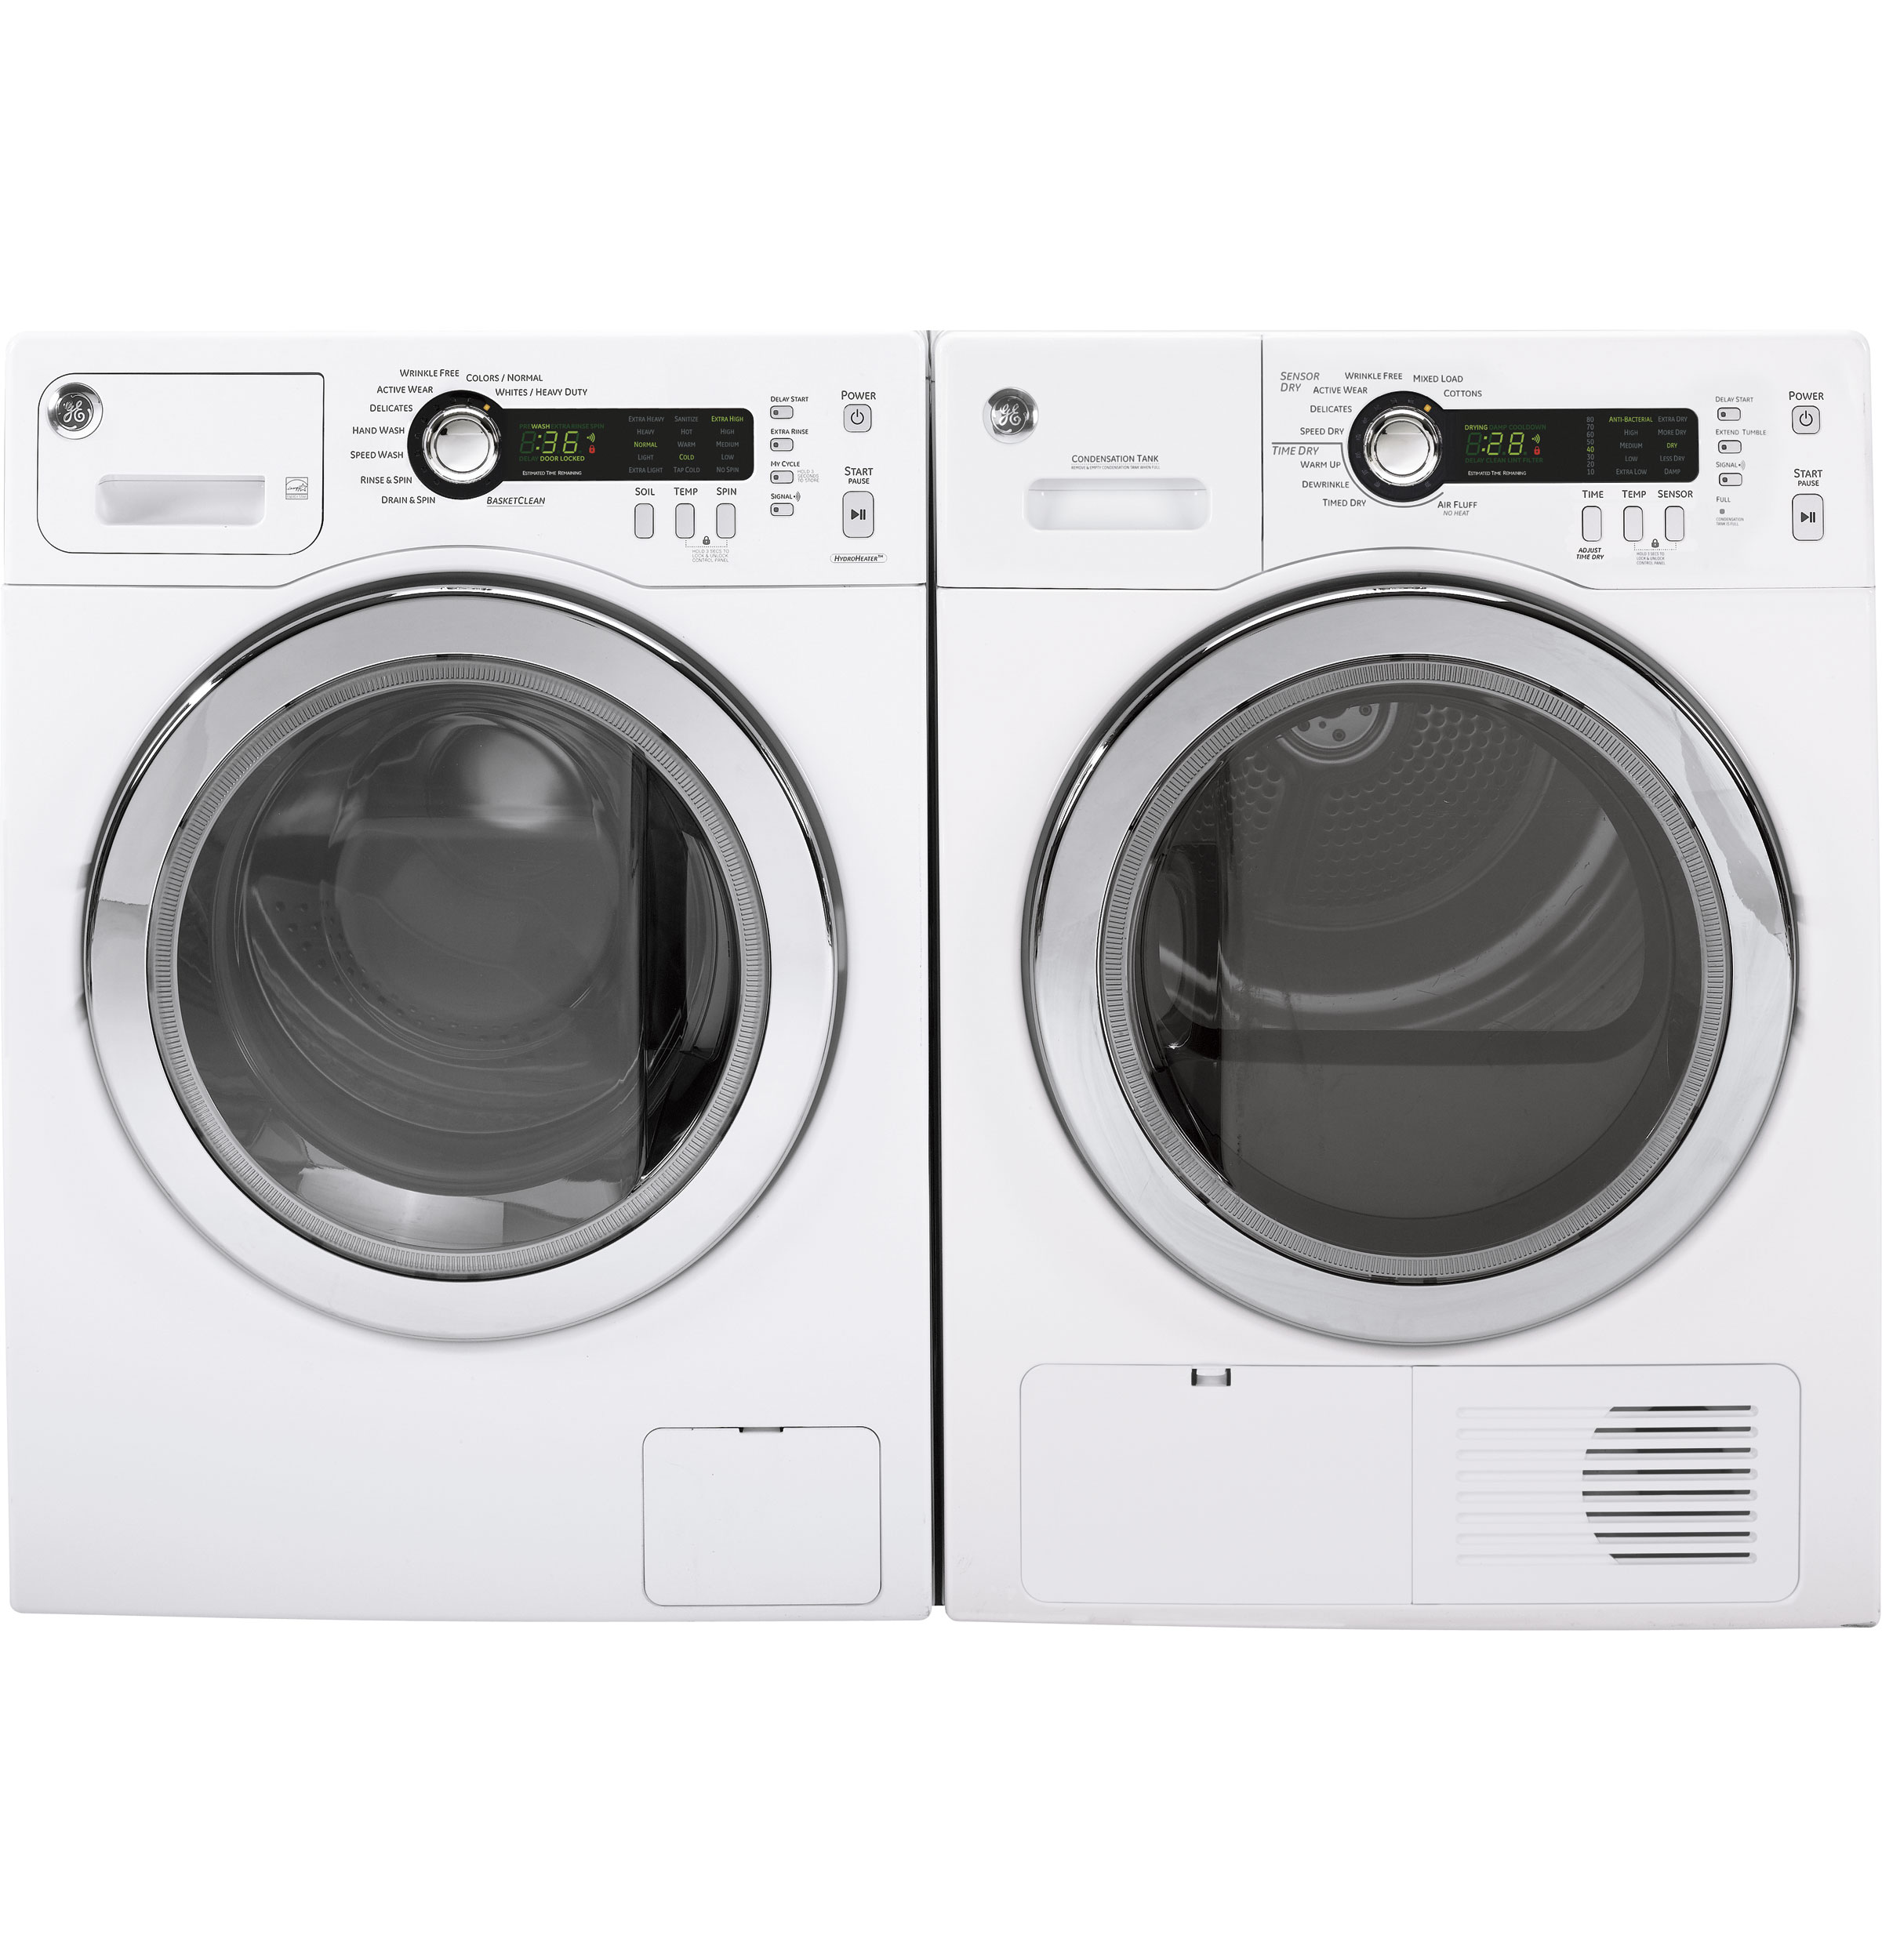 GE® 2.2 cu. ft. Front Load Washer | WCVH4800KWW | GE Appliances